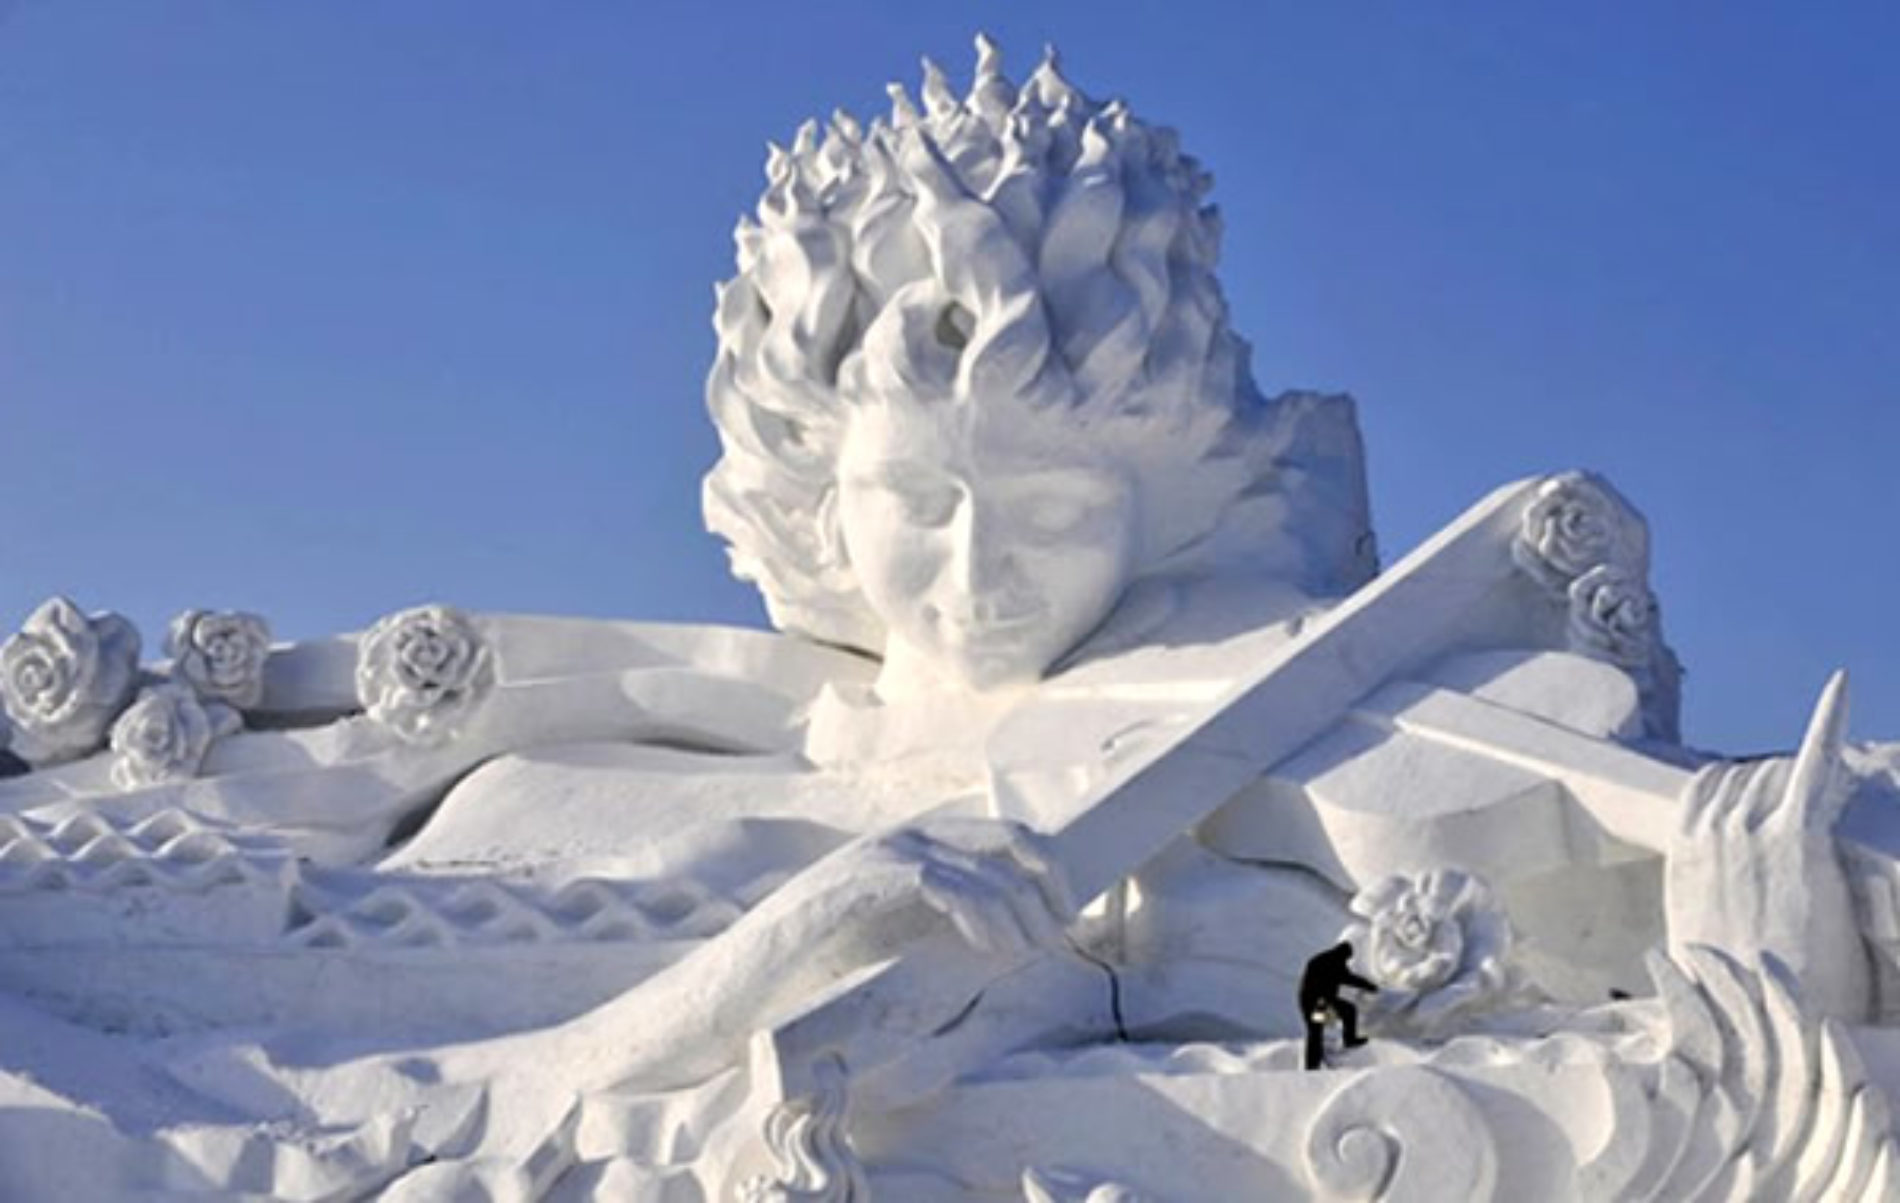 Festival da Neve e do Gelo em Harbin na China